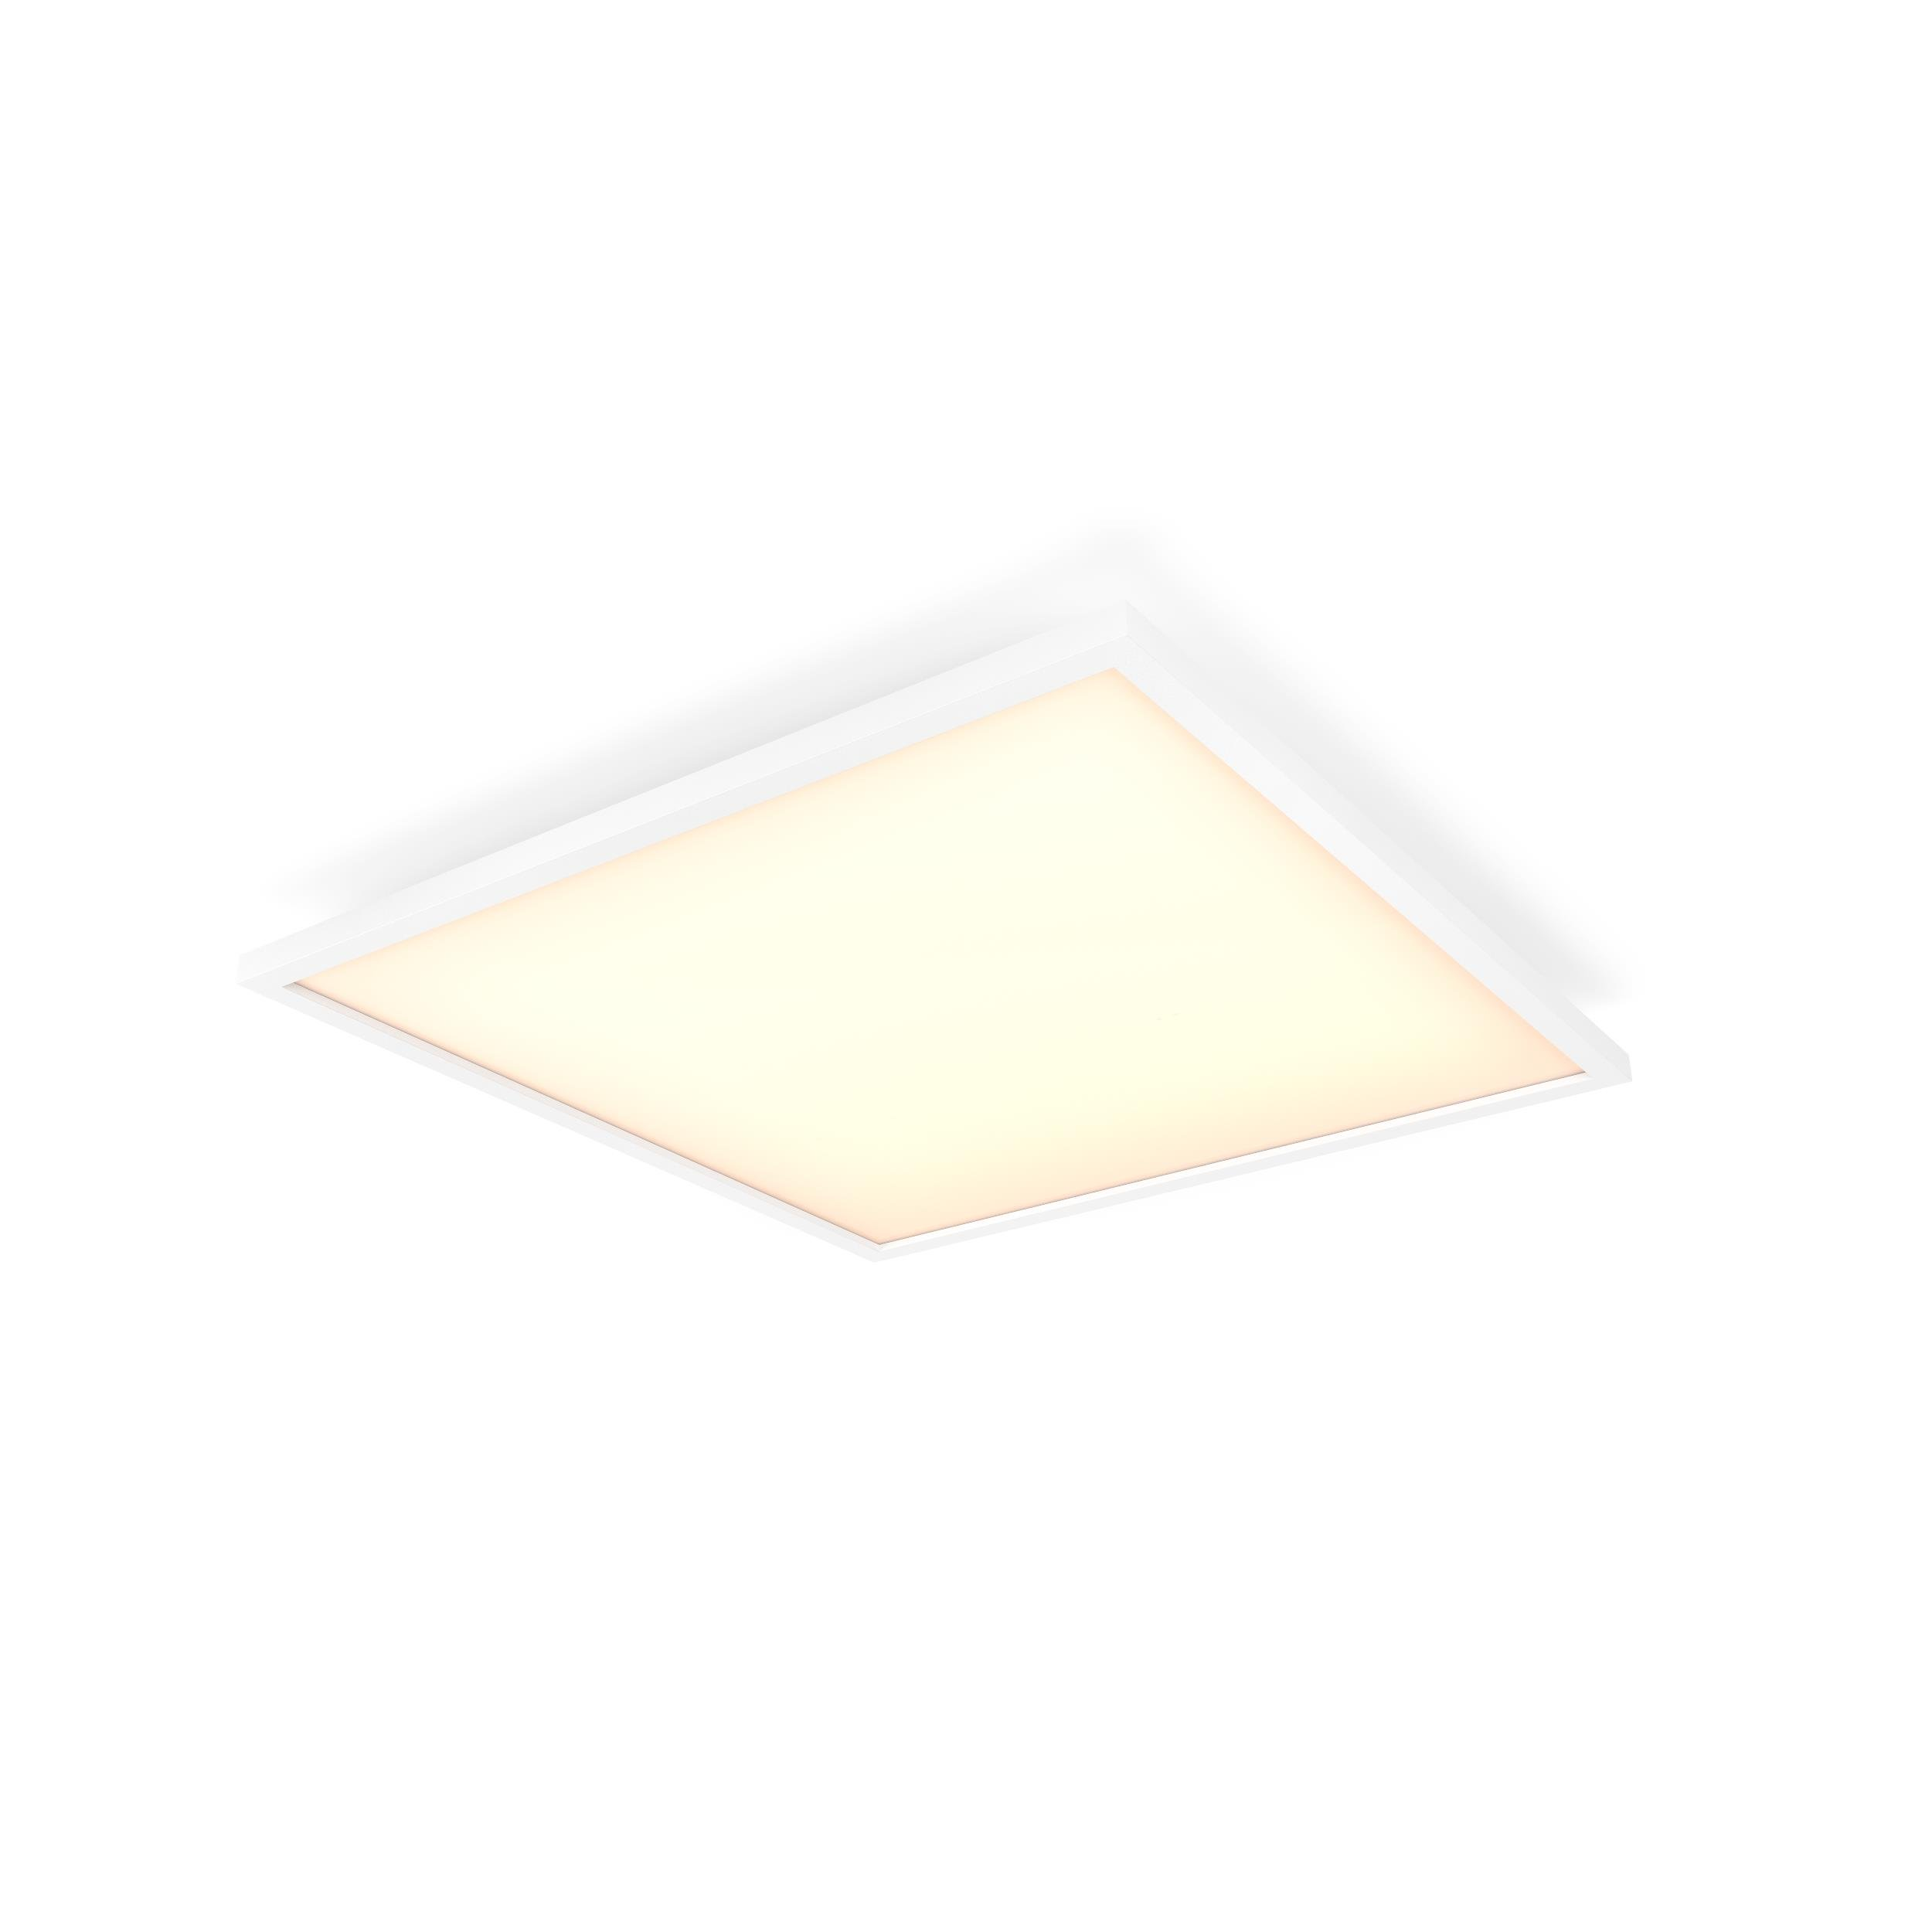 Philips Hue - Aurelle Square Ceiling Lamp - White Ambiance Bluetooth Dimmer Included